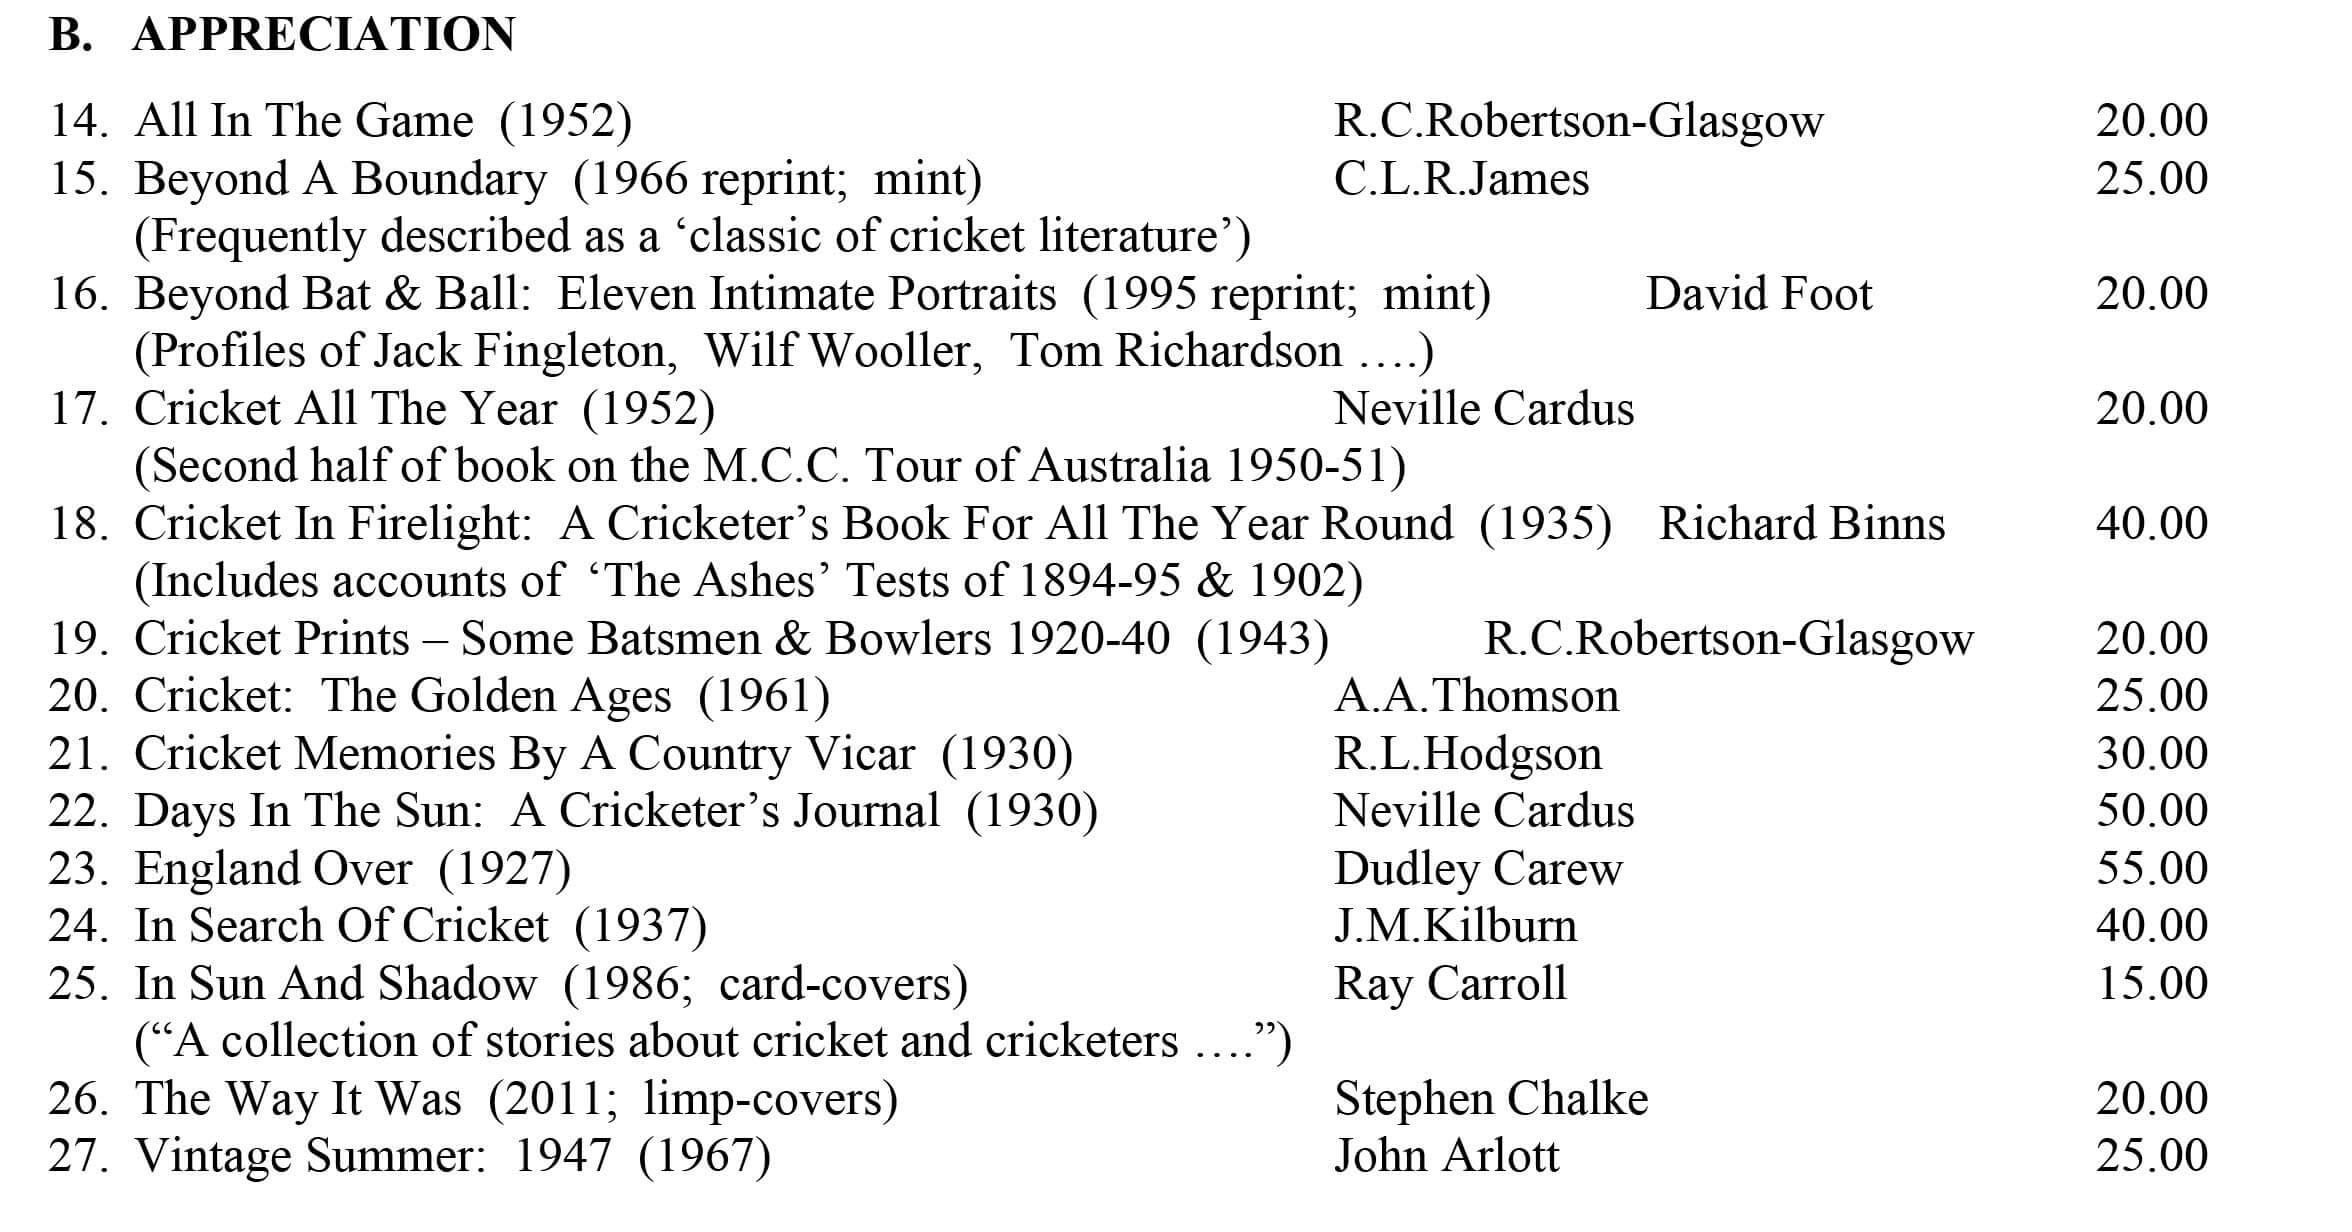 Cricket Appreciation Roger Page Cricket Books August 2016